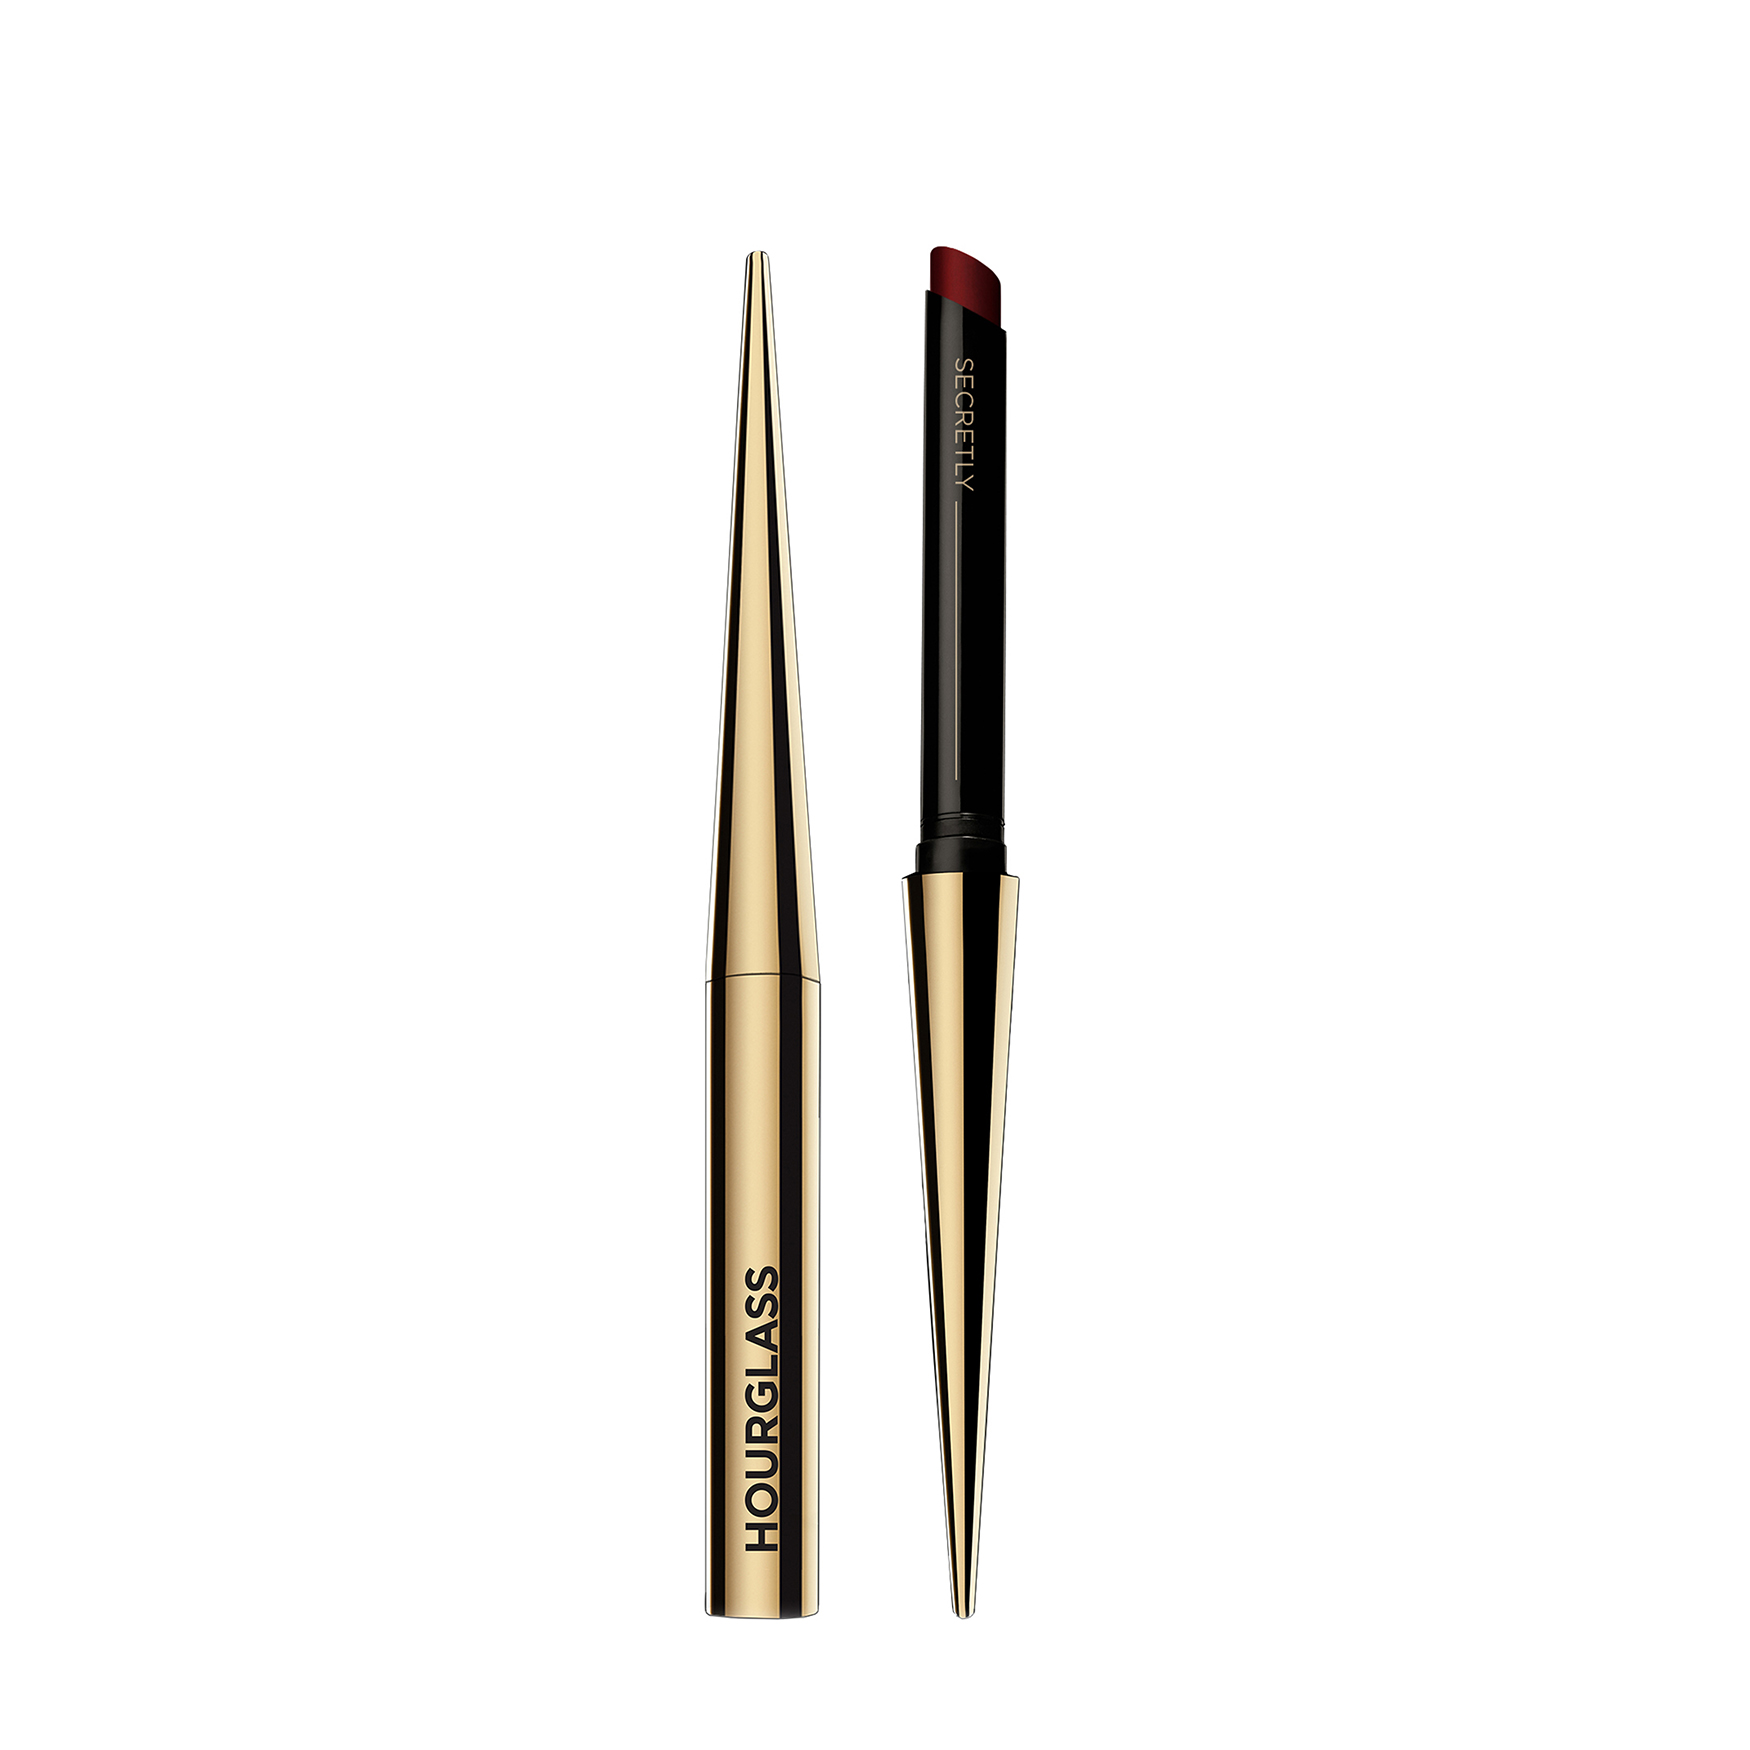 Confession Ultra Slim High Intensity Refillable Lipstick, SECRETLY, large